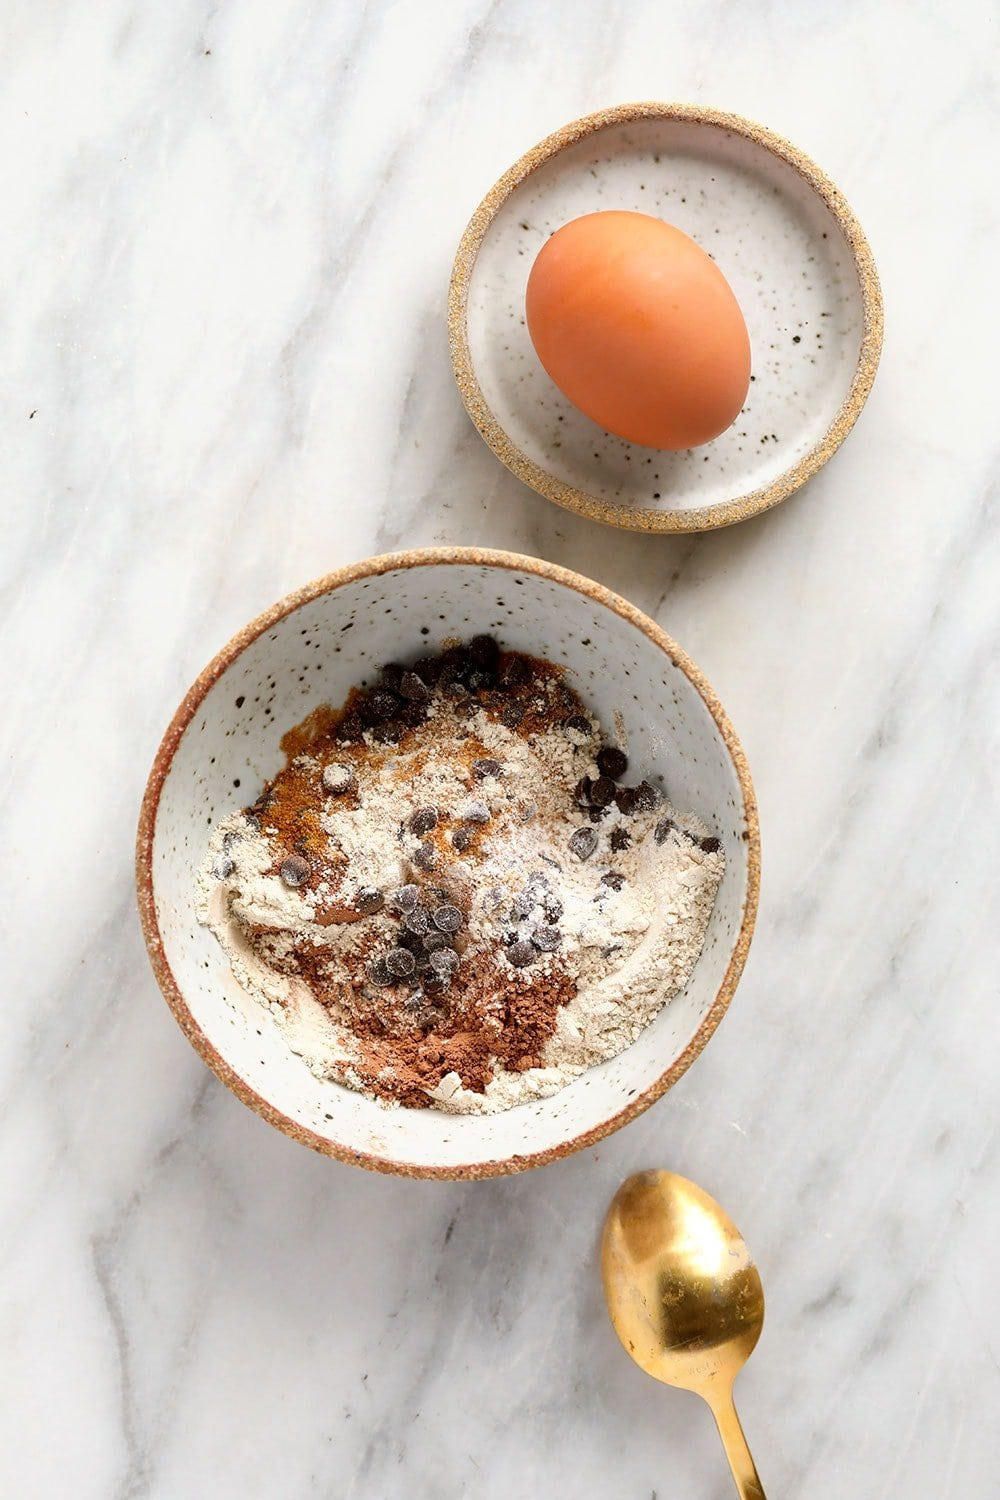 chocolate mug cake dry ingredients in a bowl with an egg ready to be cracked into the mix